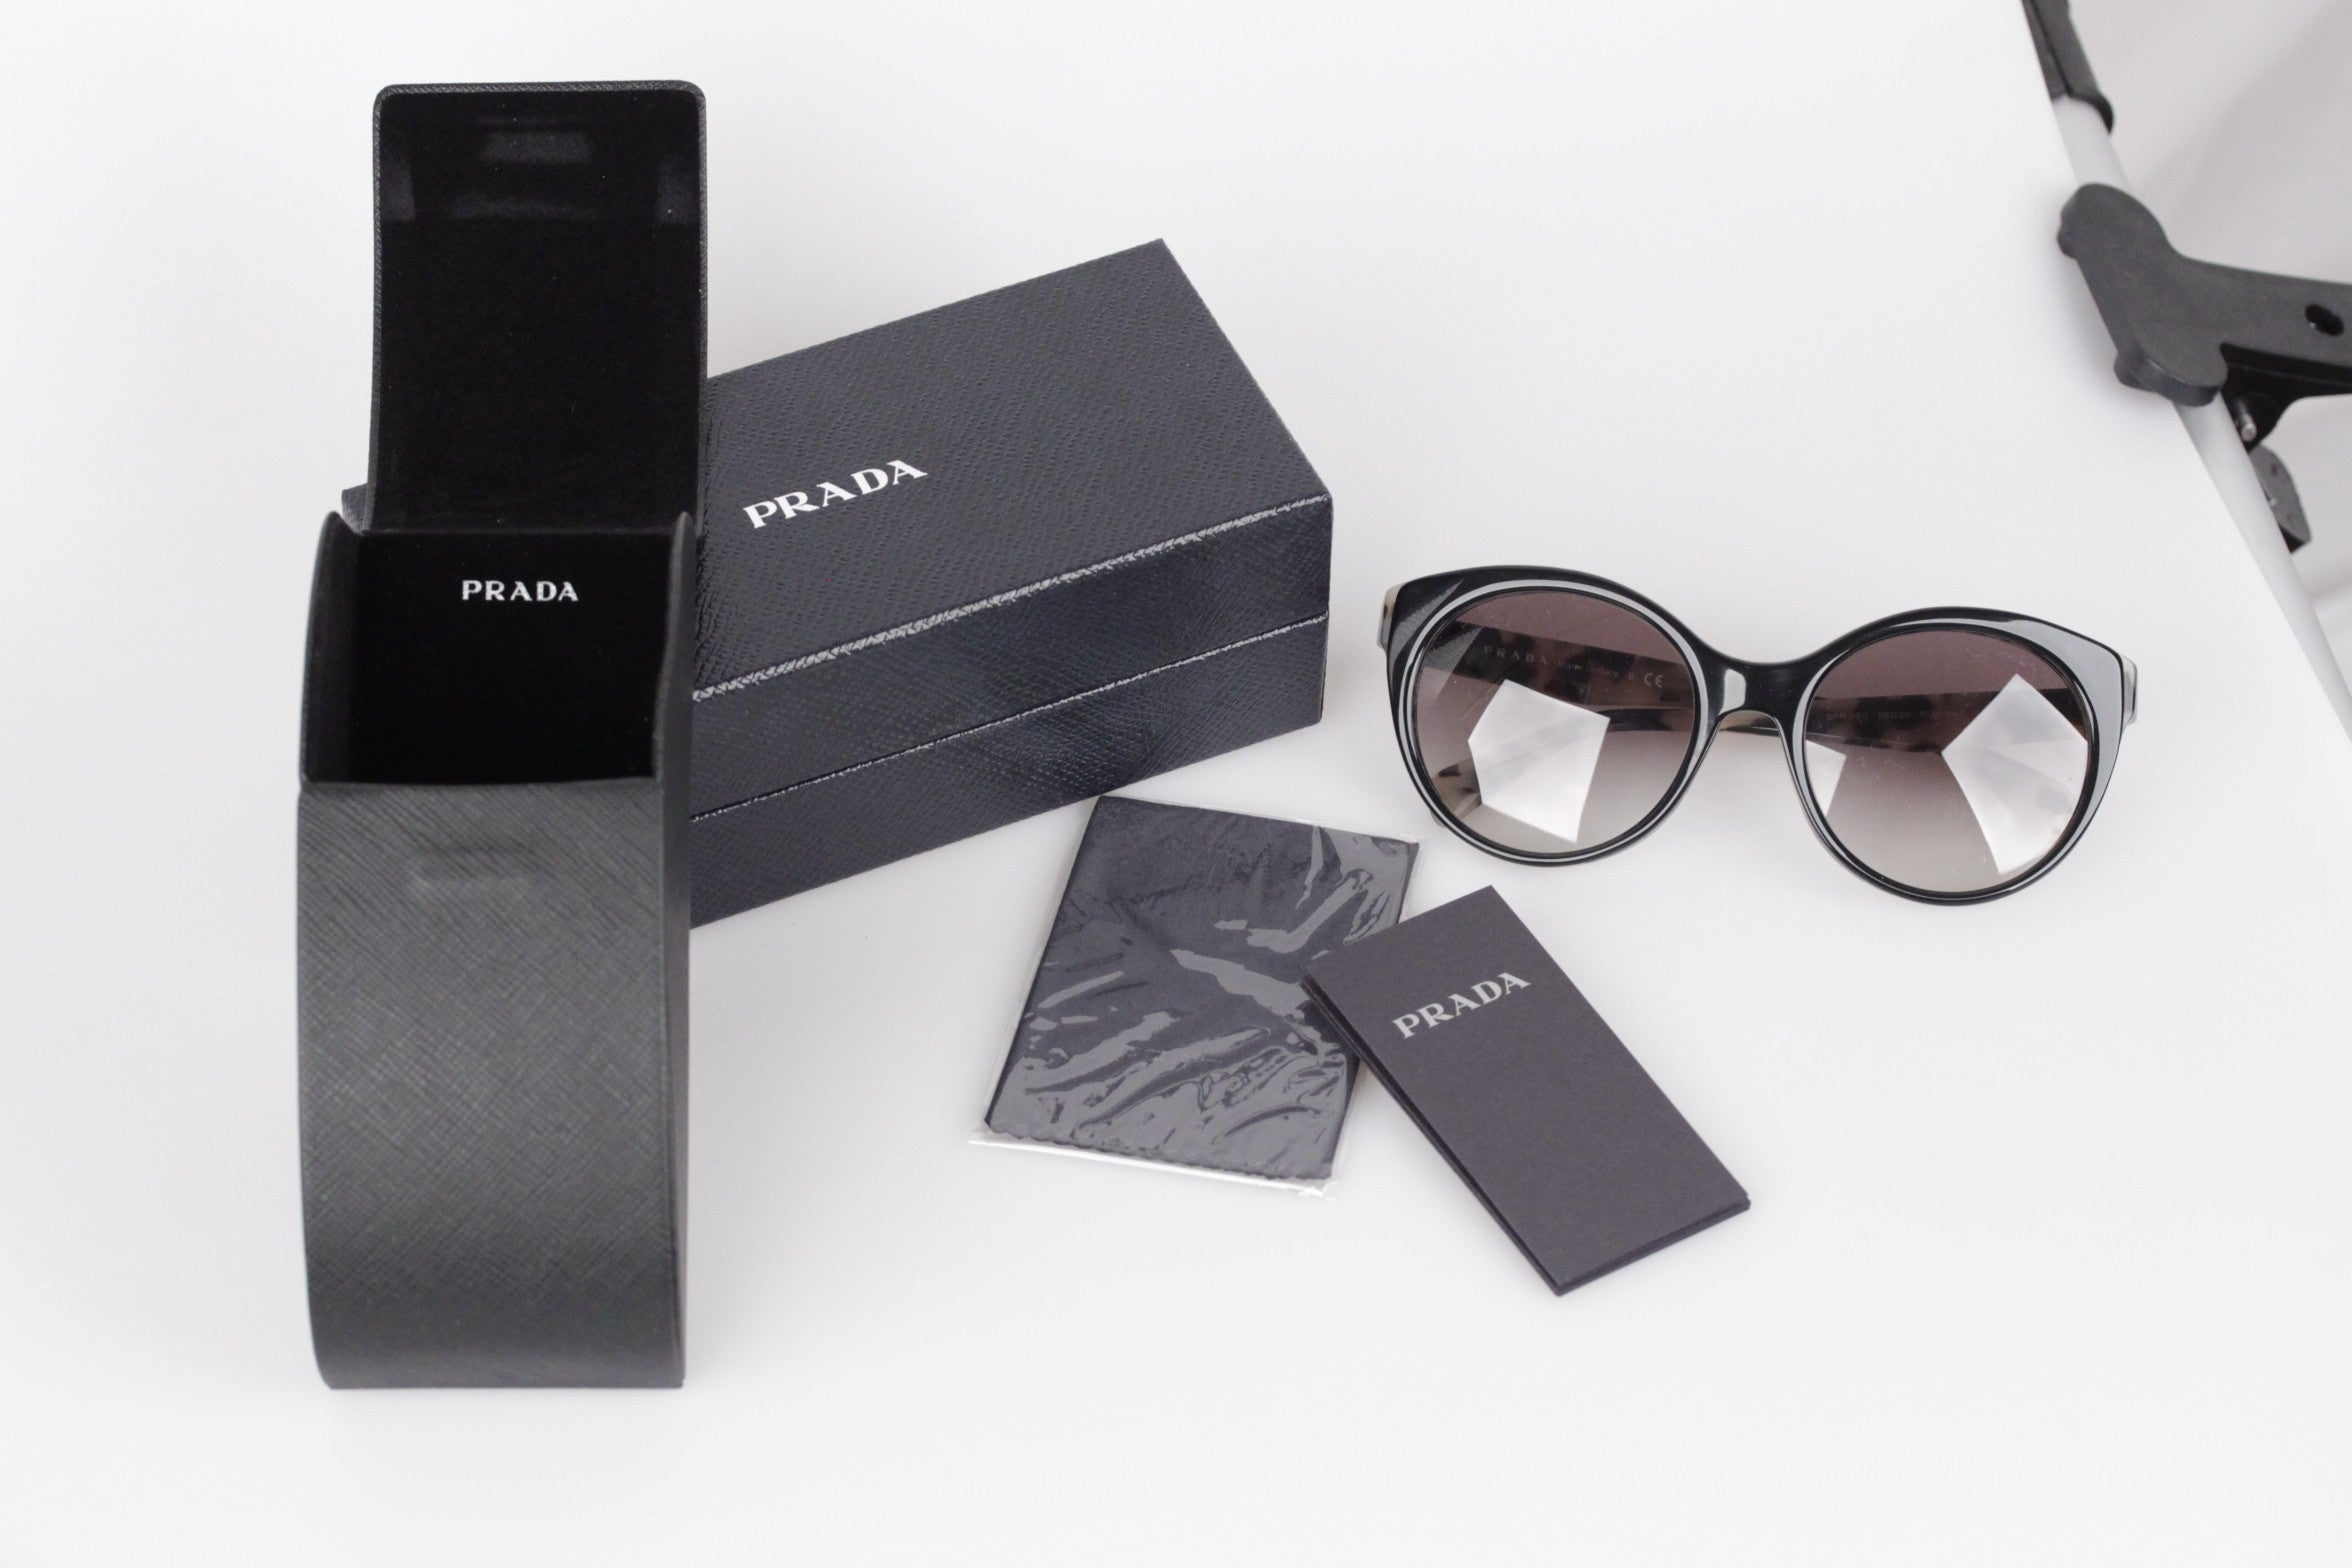 4c41c21eaba3 PRADA Sunglasses SPR 230 56 20 140 2N ANIMALIER pattern w CASE and BOX at  1stdibs